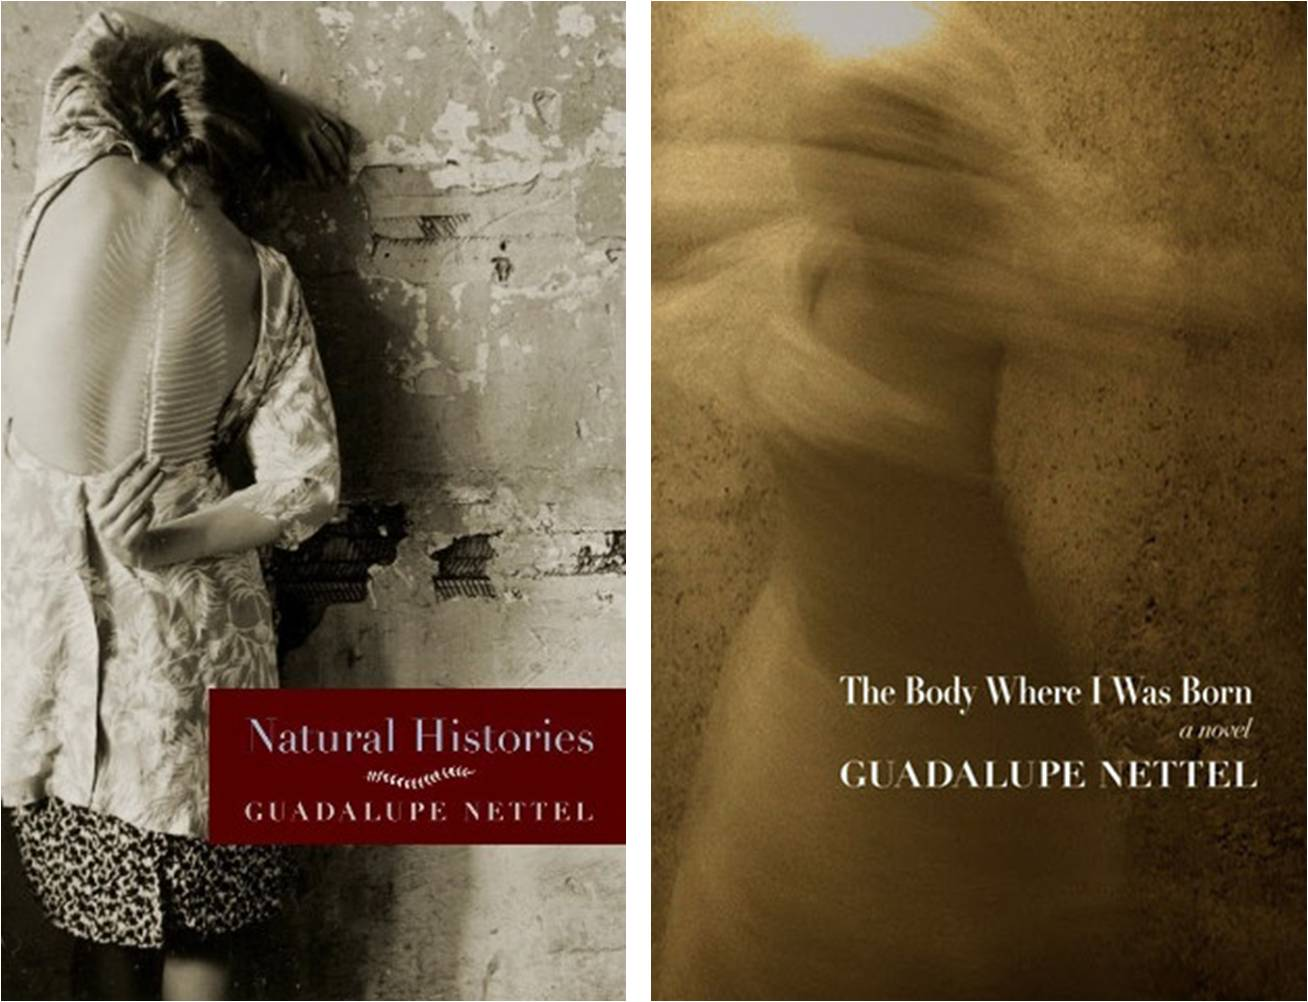 Natural Histories  &  The Body Where I Was Born  by  Guadalupe Nettel  trans.  JT Lichtenstein  (Seven Stories, June 2015)  Reviewed by  Tyler Curtis